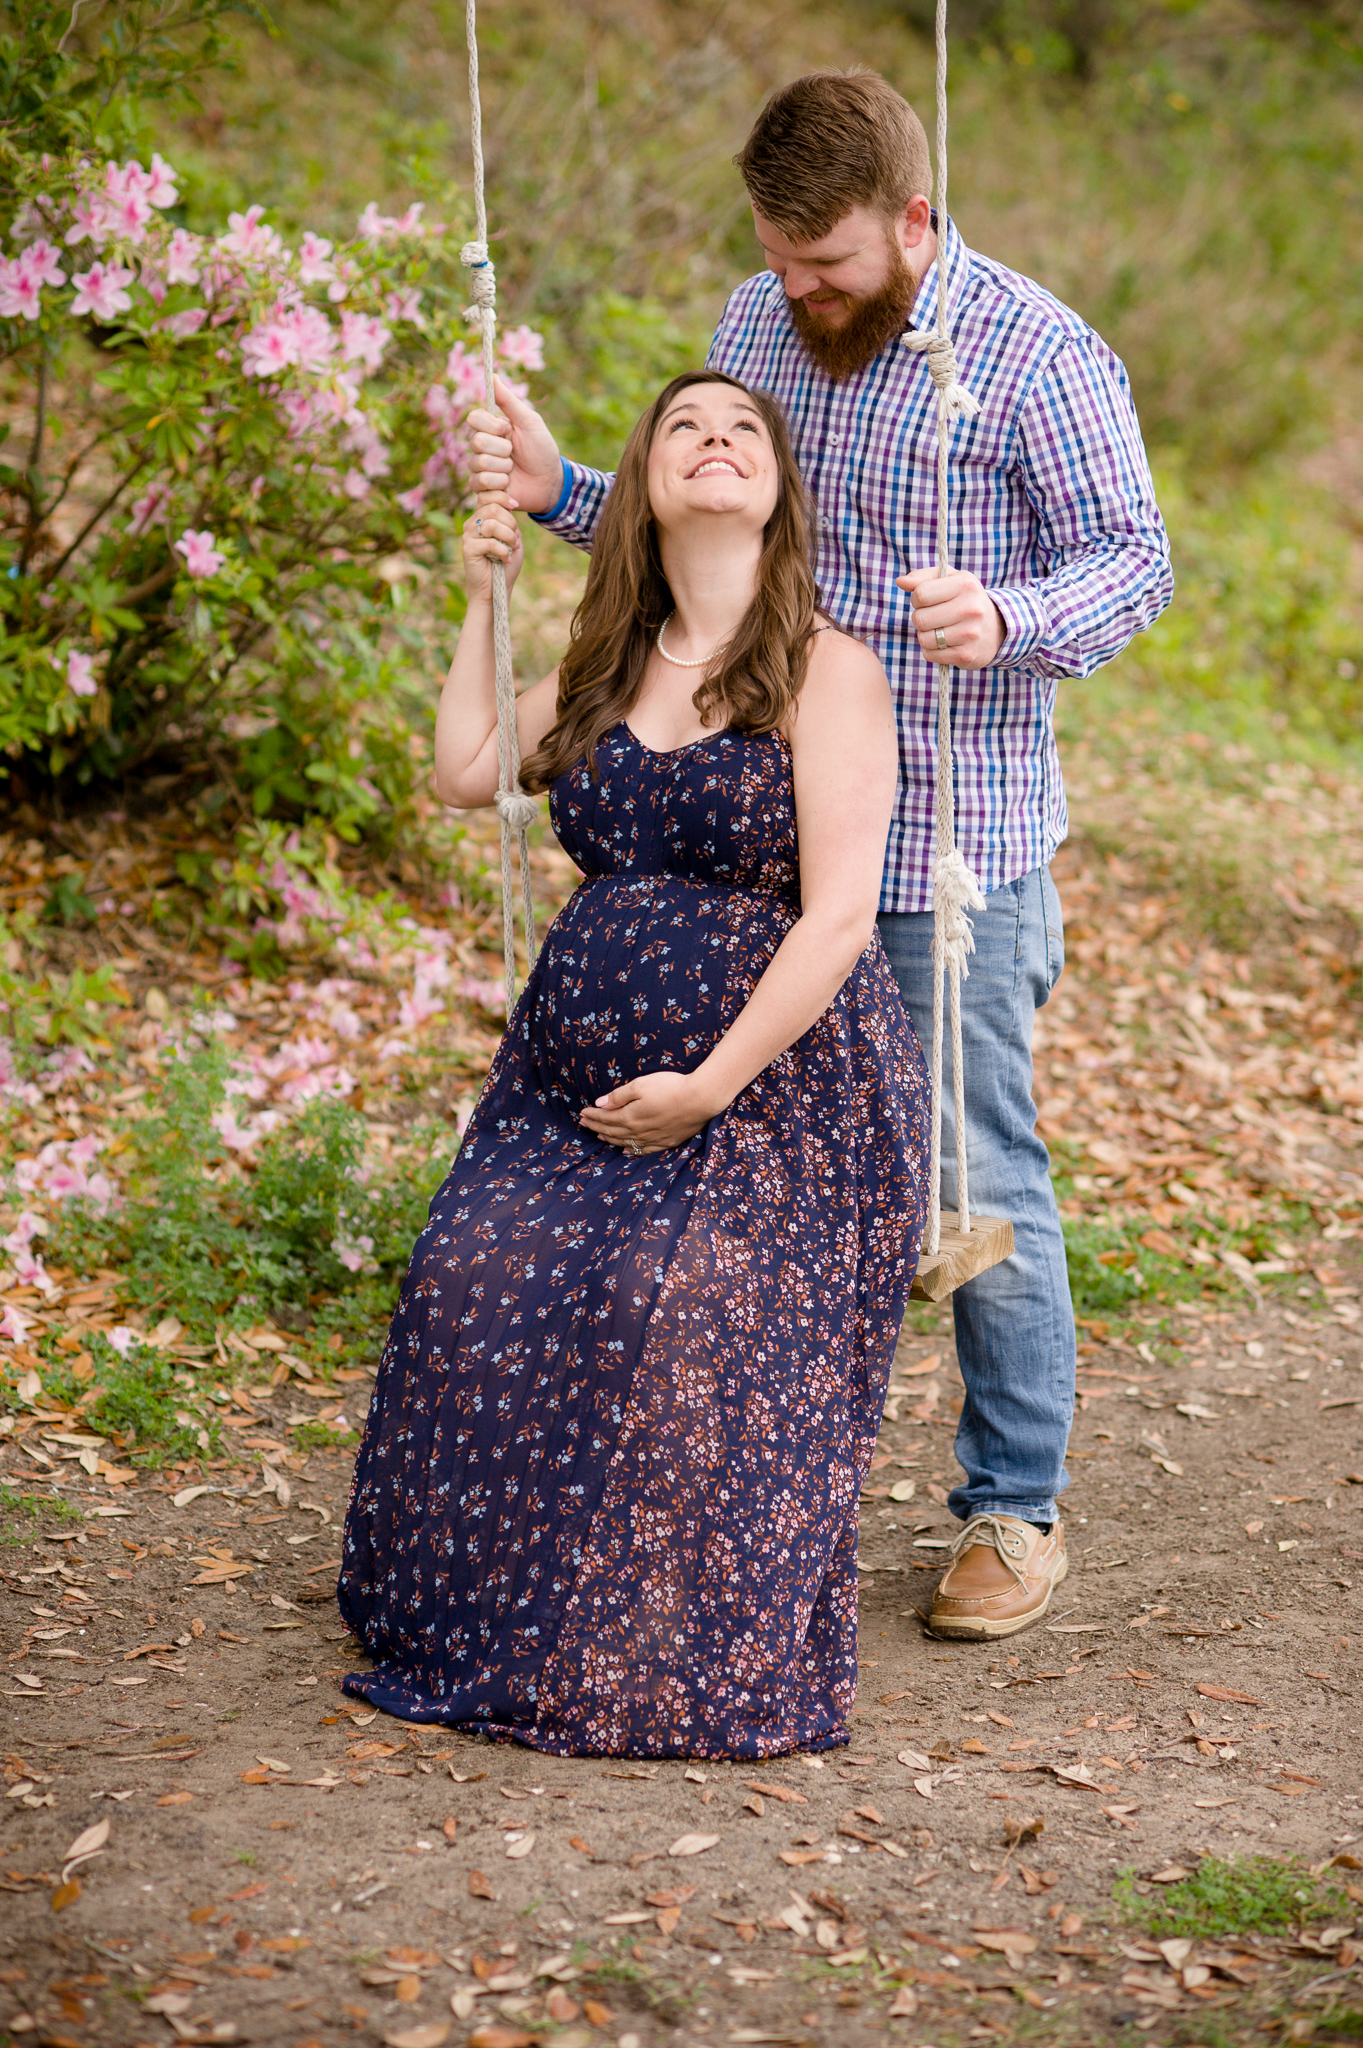 beaufort-south-carolina-maternity-portraits-2421.JPG